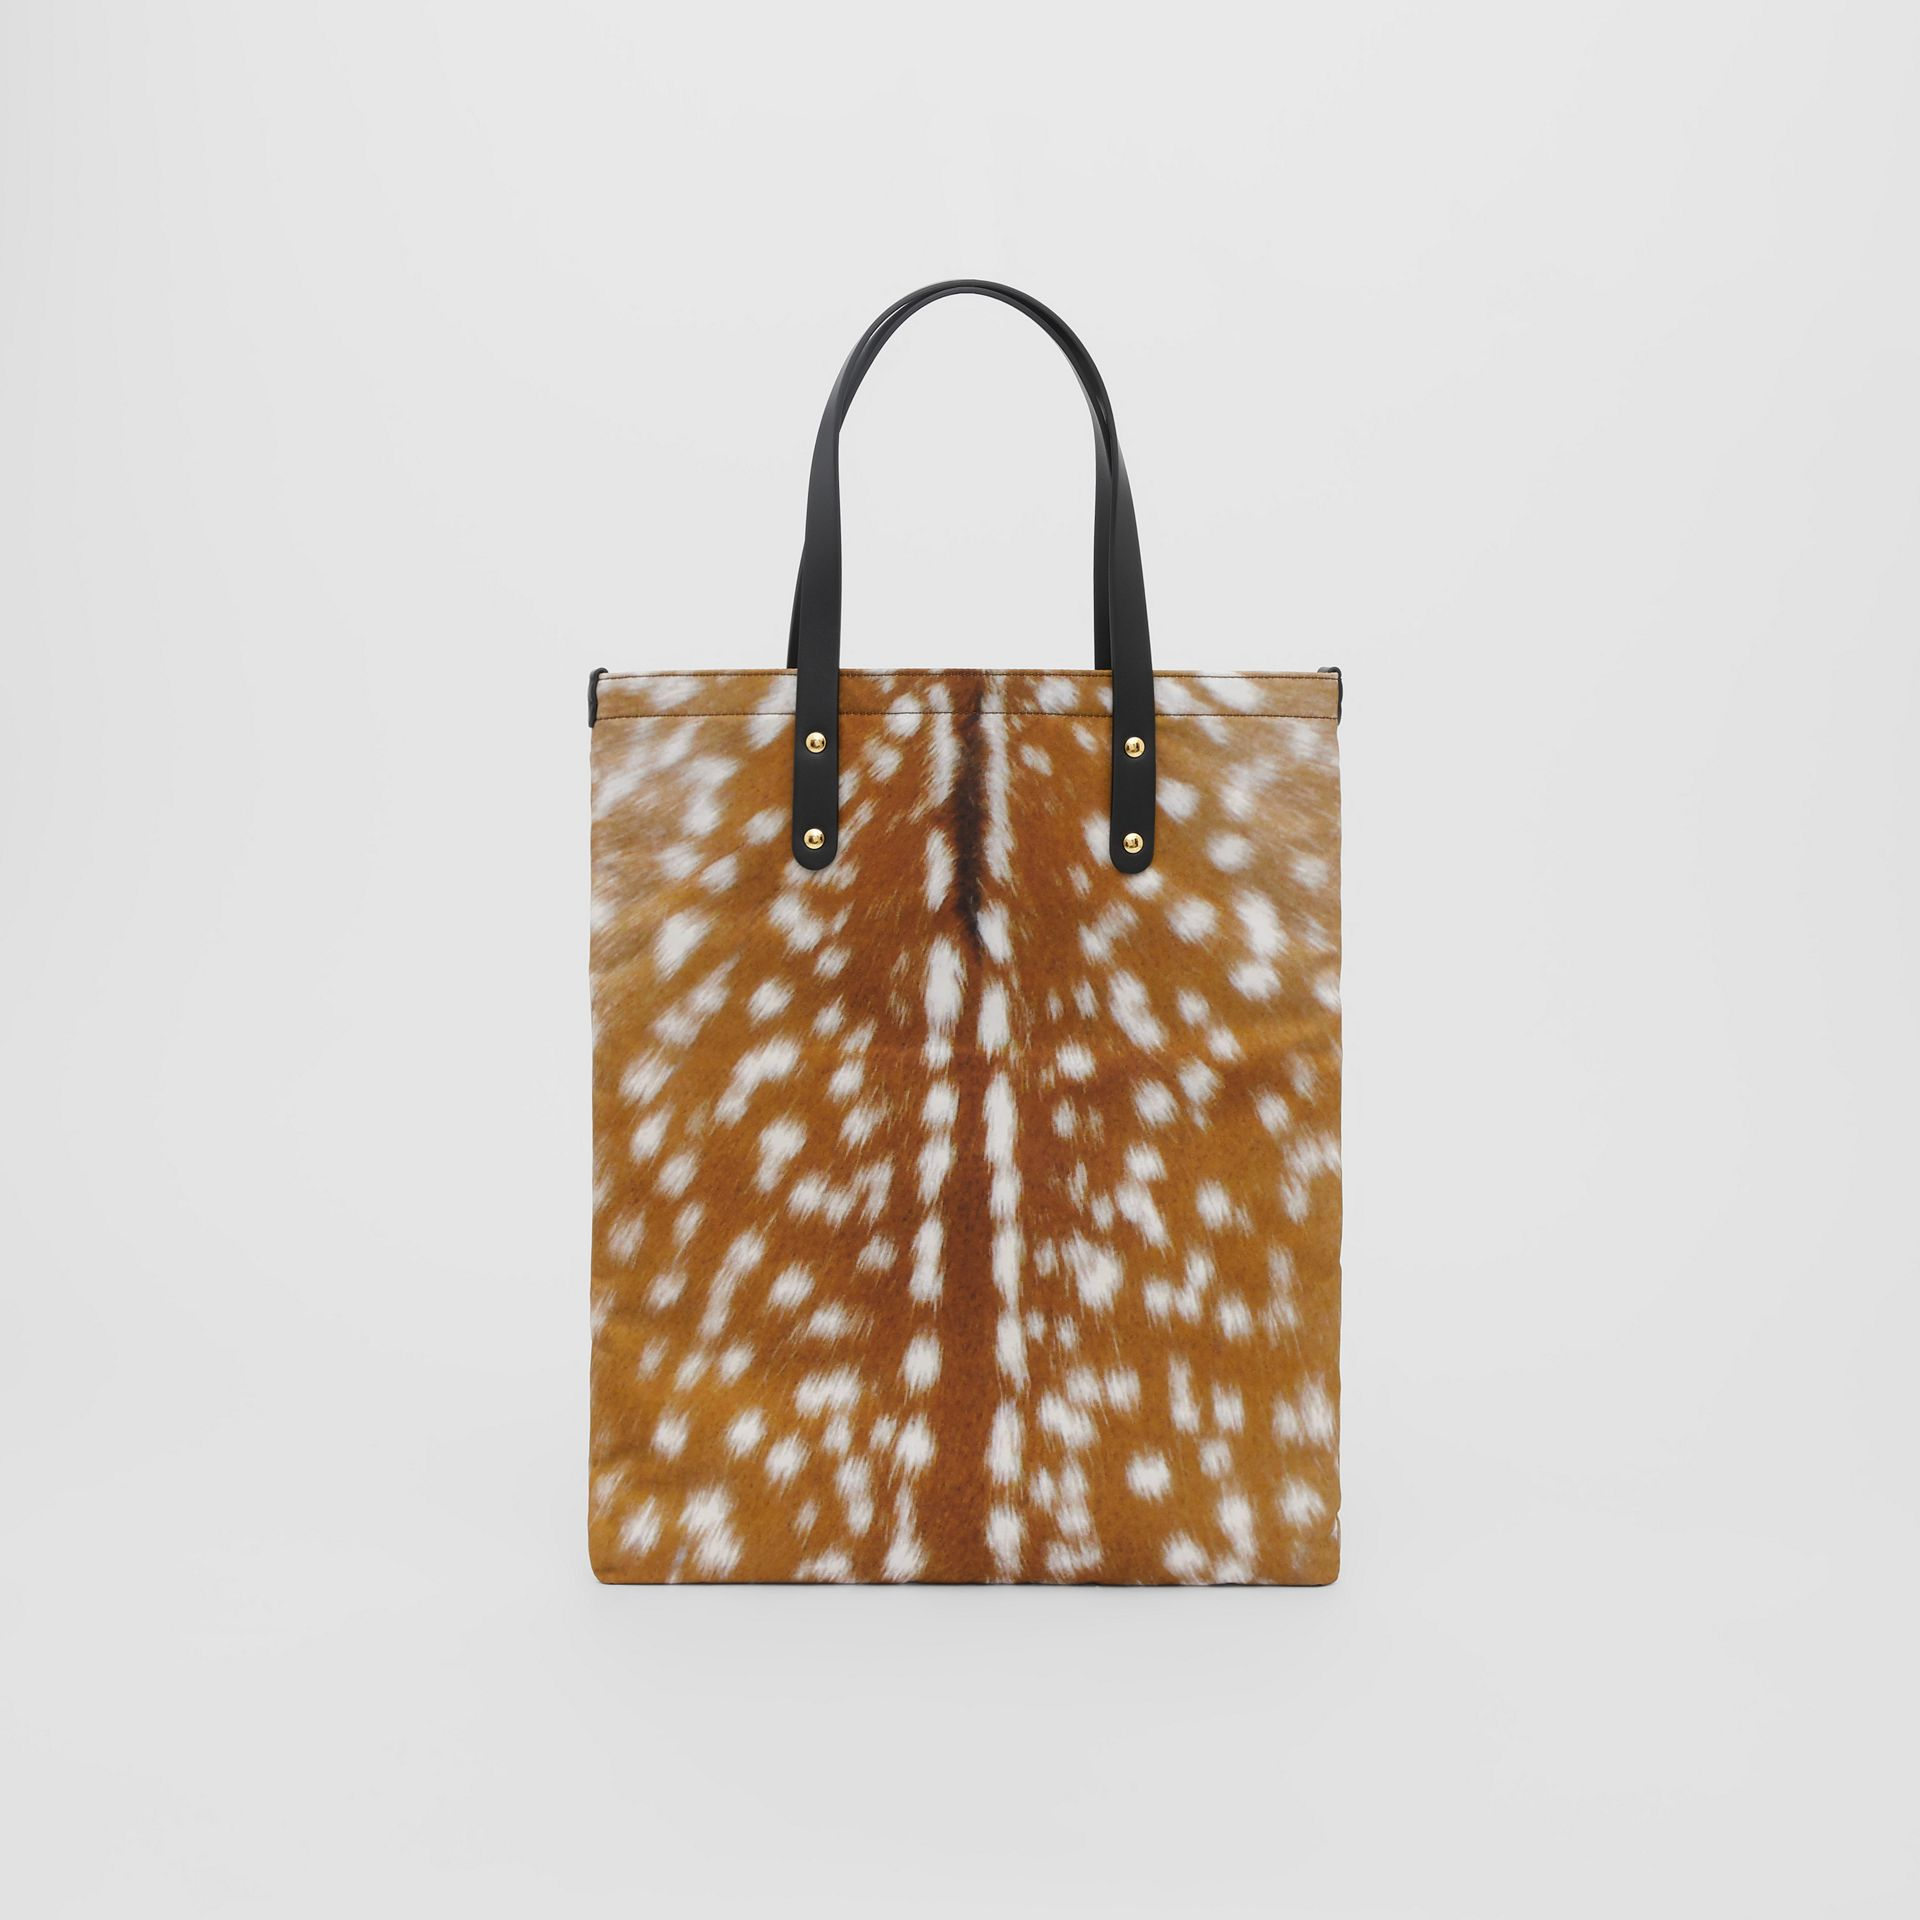 Deer Print Nylon Tote Bag in Black | Burberry - gallery image 4